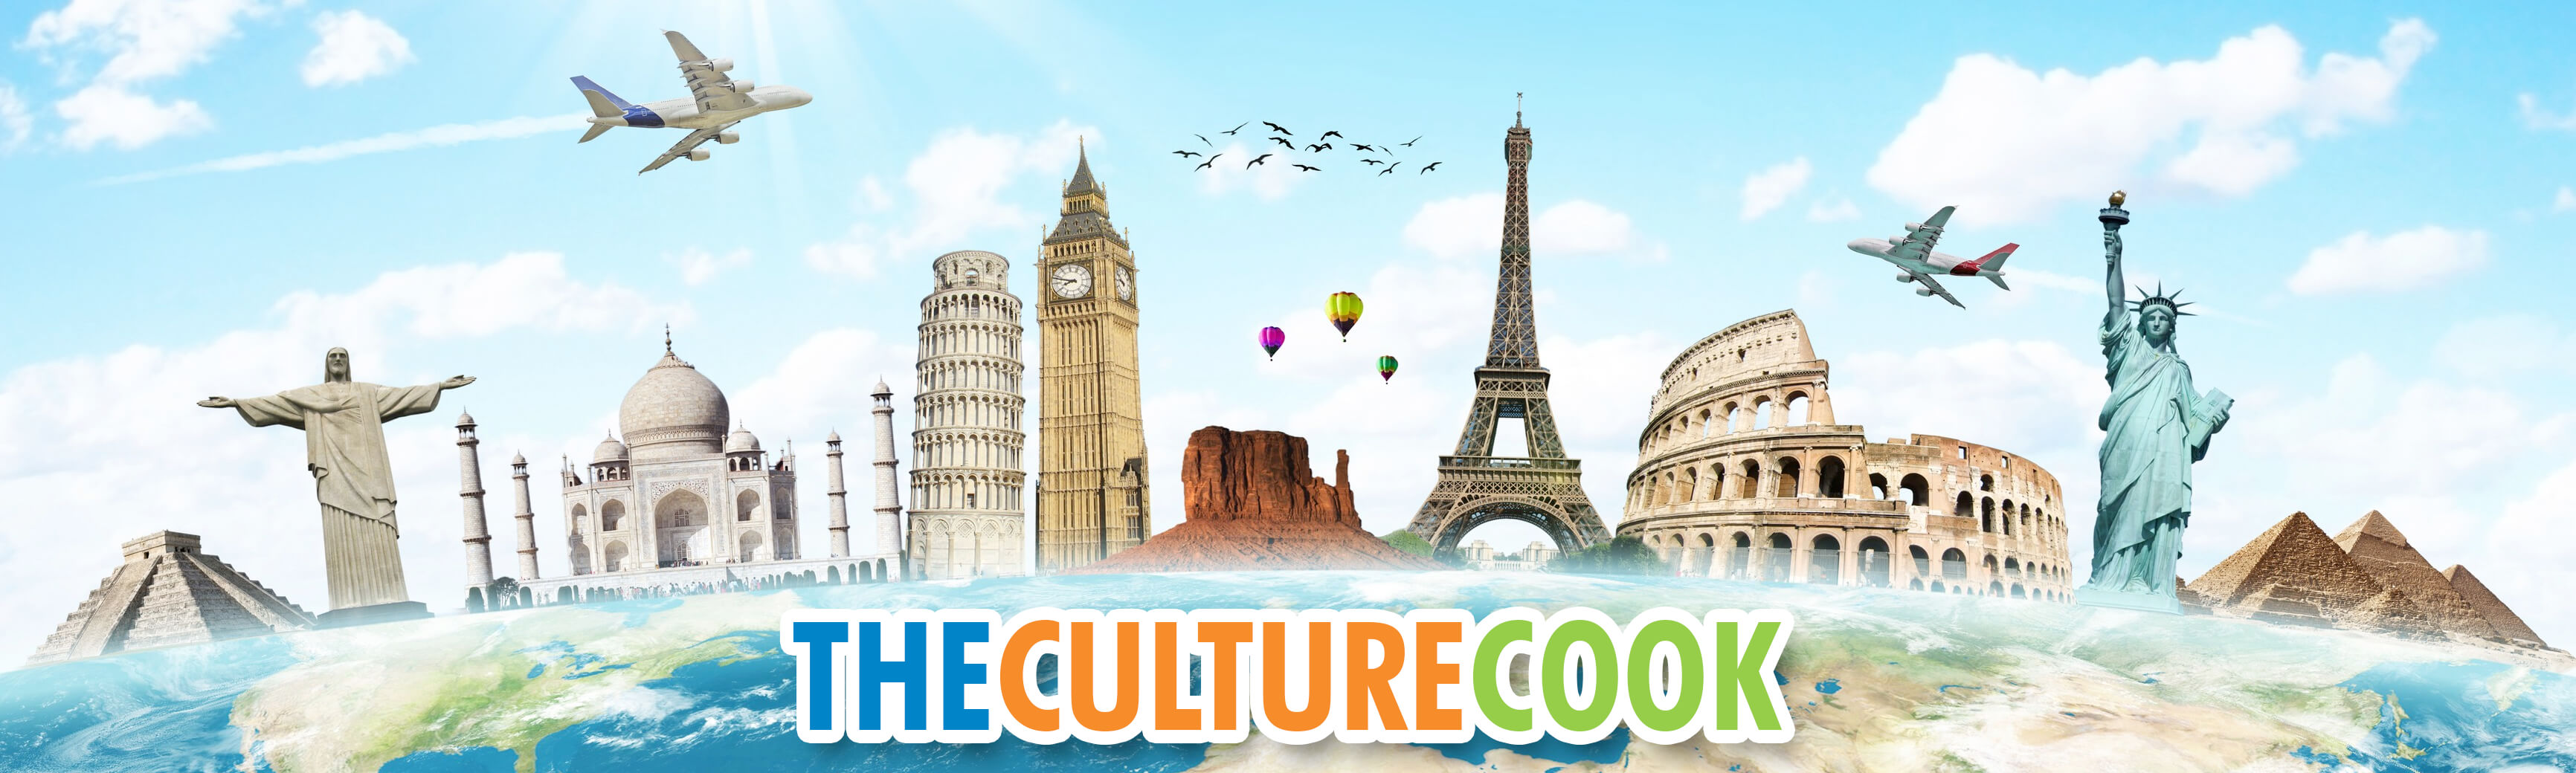 The Culture Cook